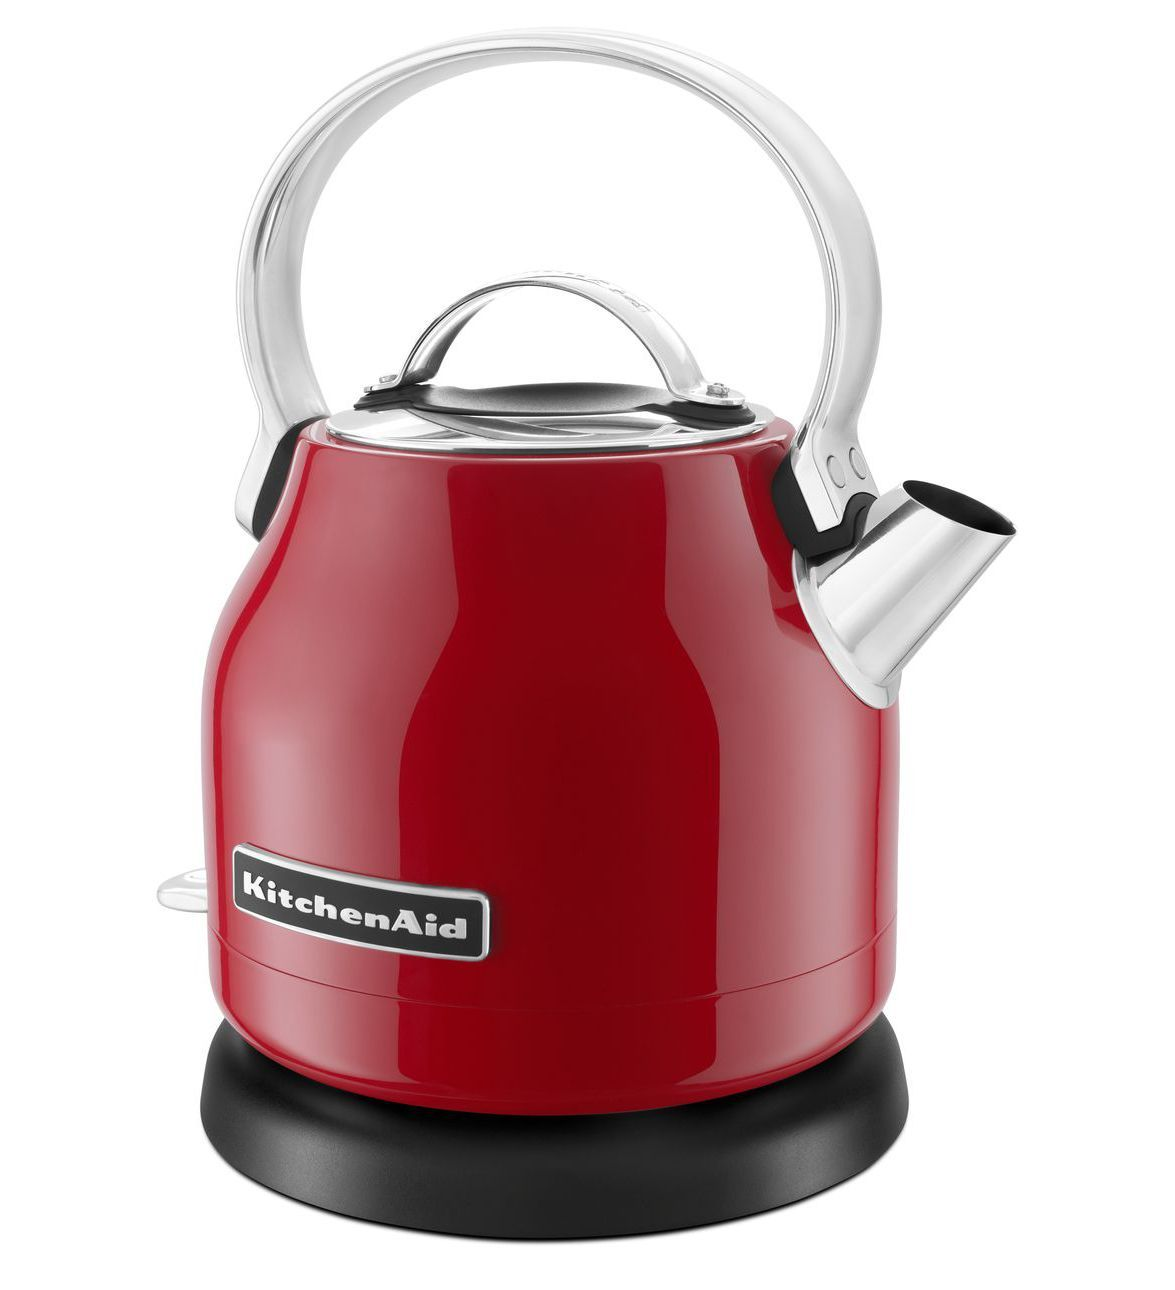 kitchenaid 4 1 2 quot red stainless steel 1 25l electric kettle empire red the kitchenaid 174 electric kettle is simple to use and offers 6139